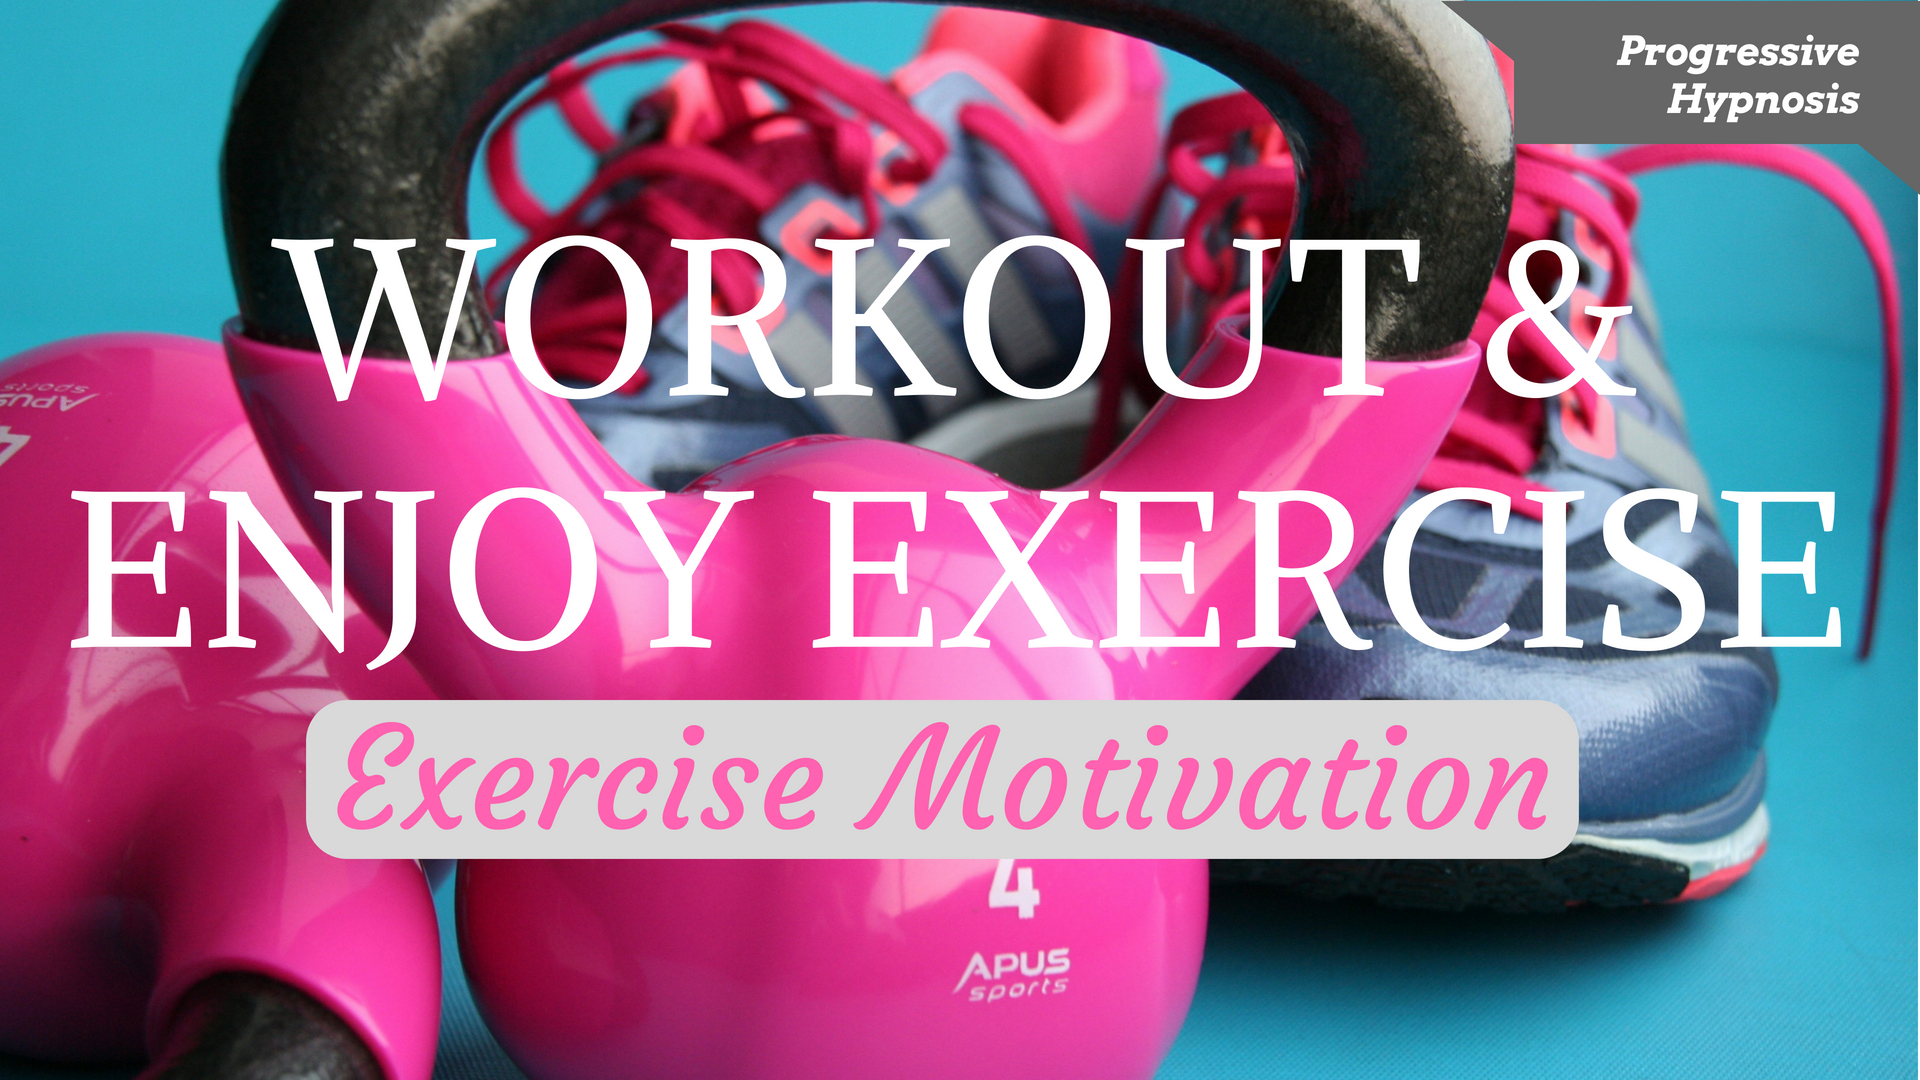 Exercise Motivation ★ Workout and Enjoy Exercise